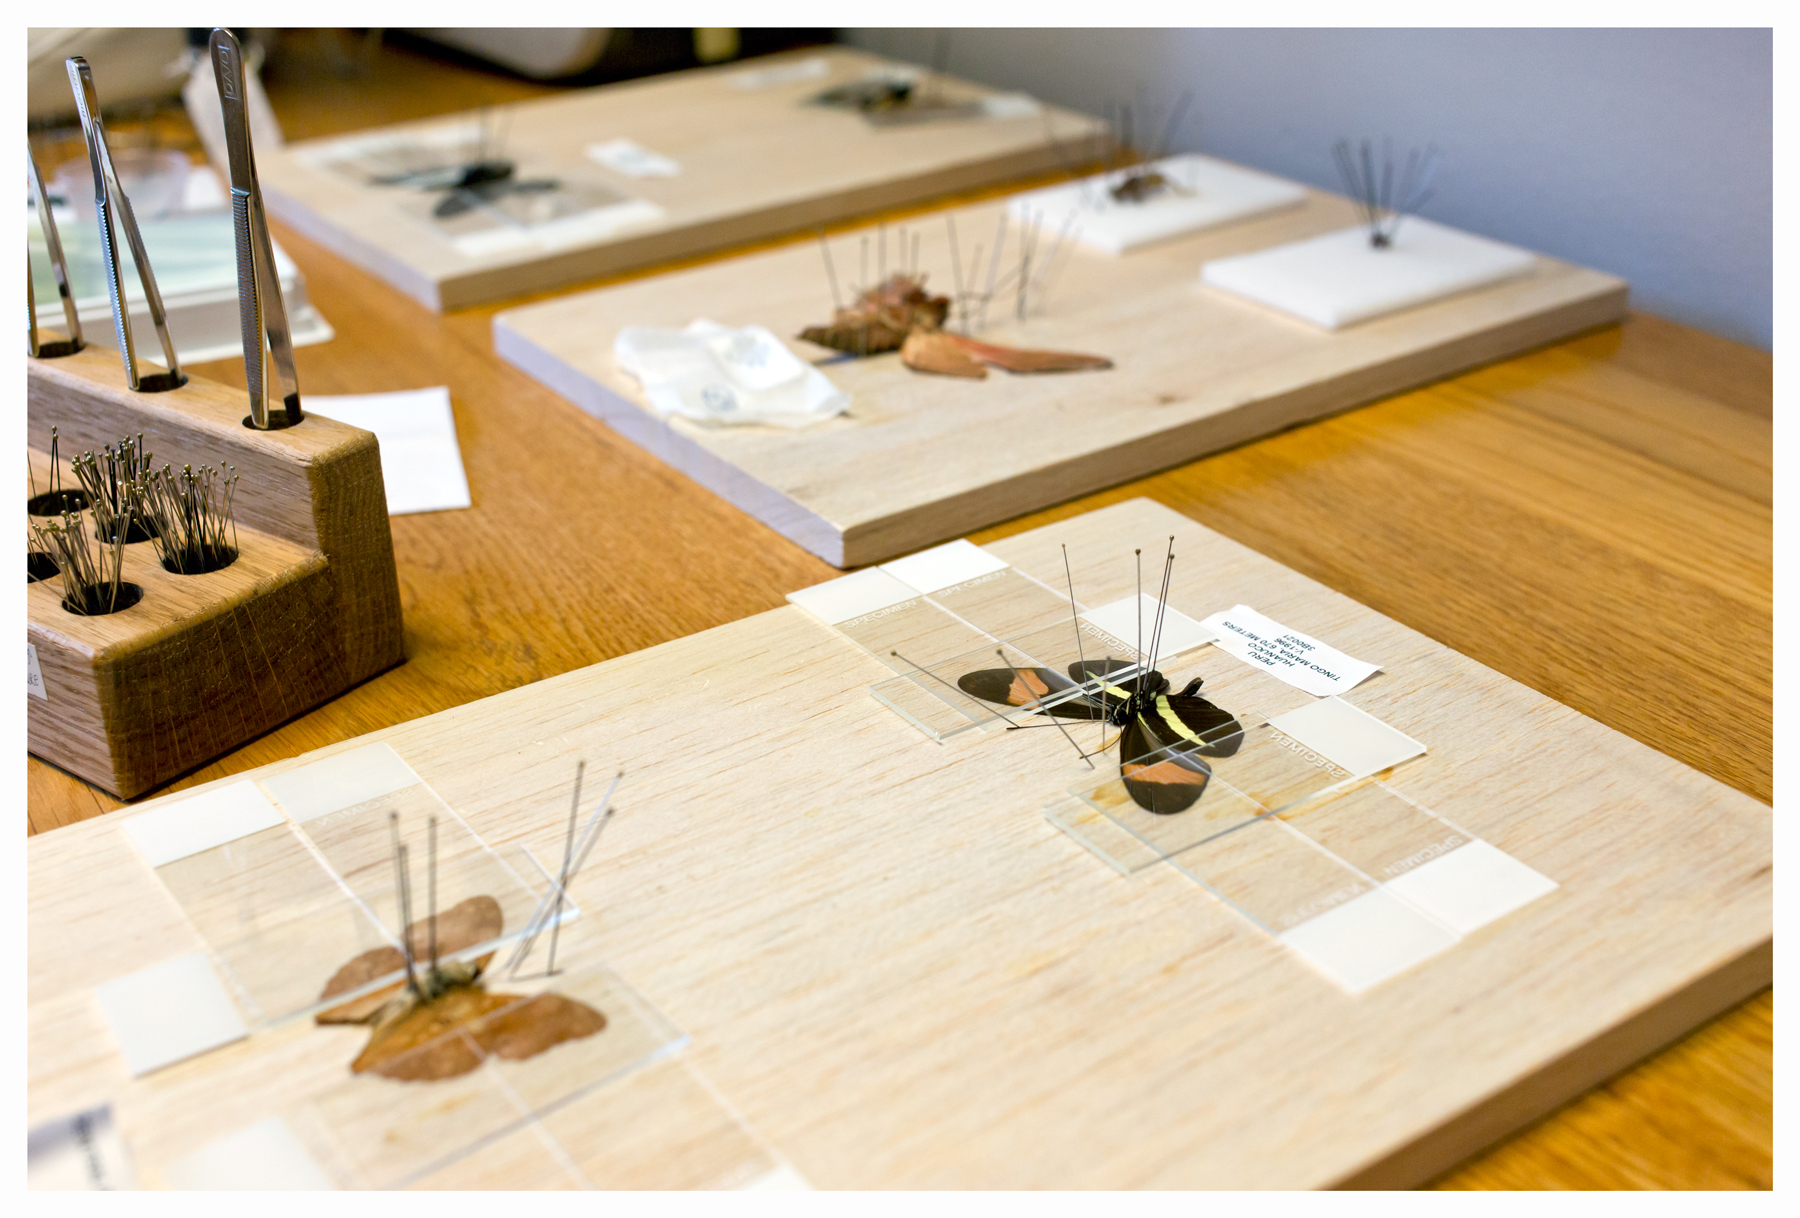 Mounted butterfly & moth specimens; Patel Lab, UC Berkeley; Berkeley, CA; January 2014